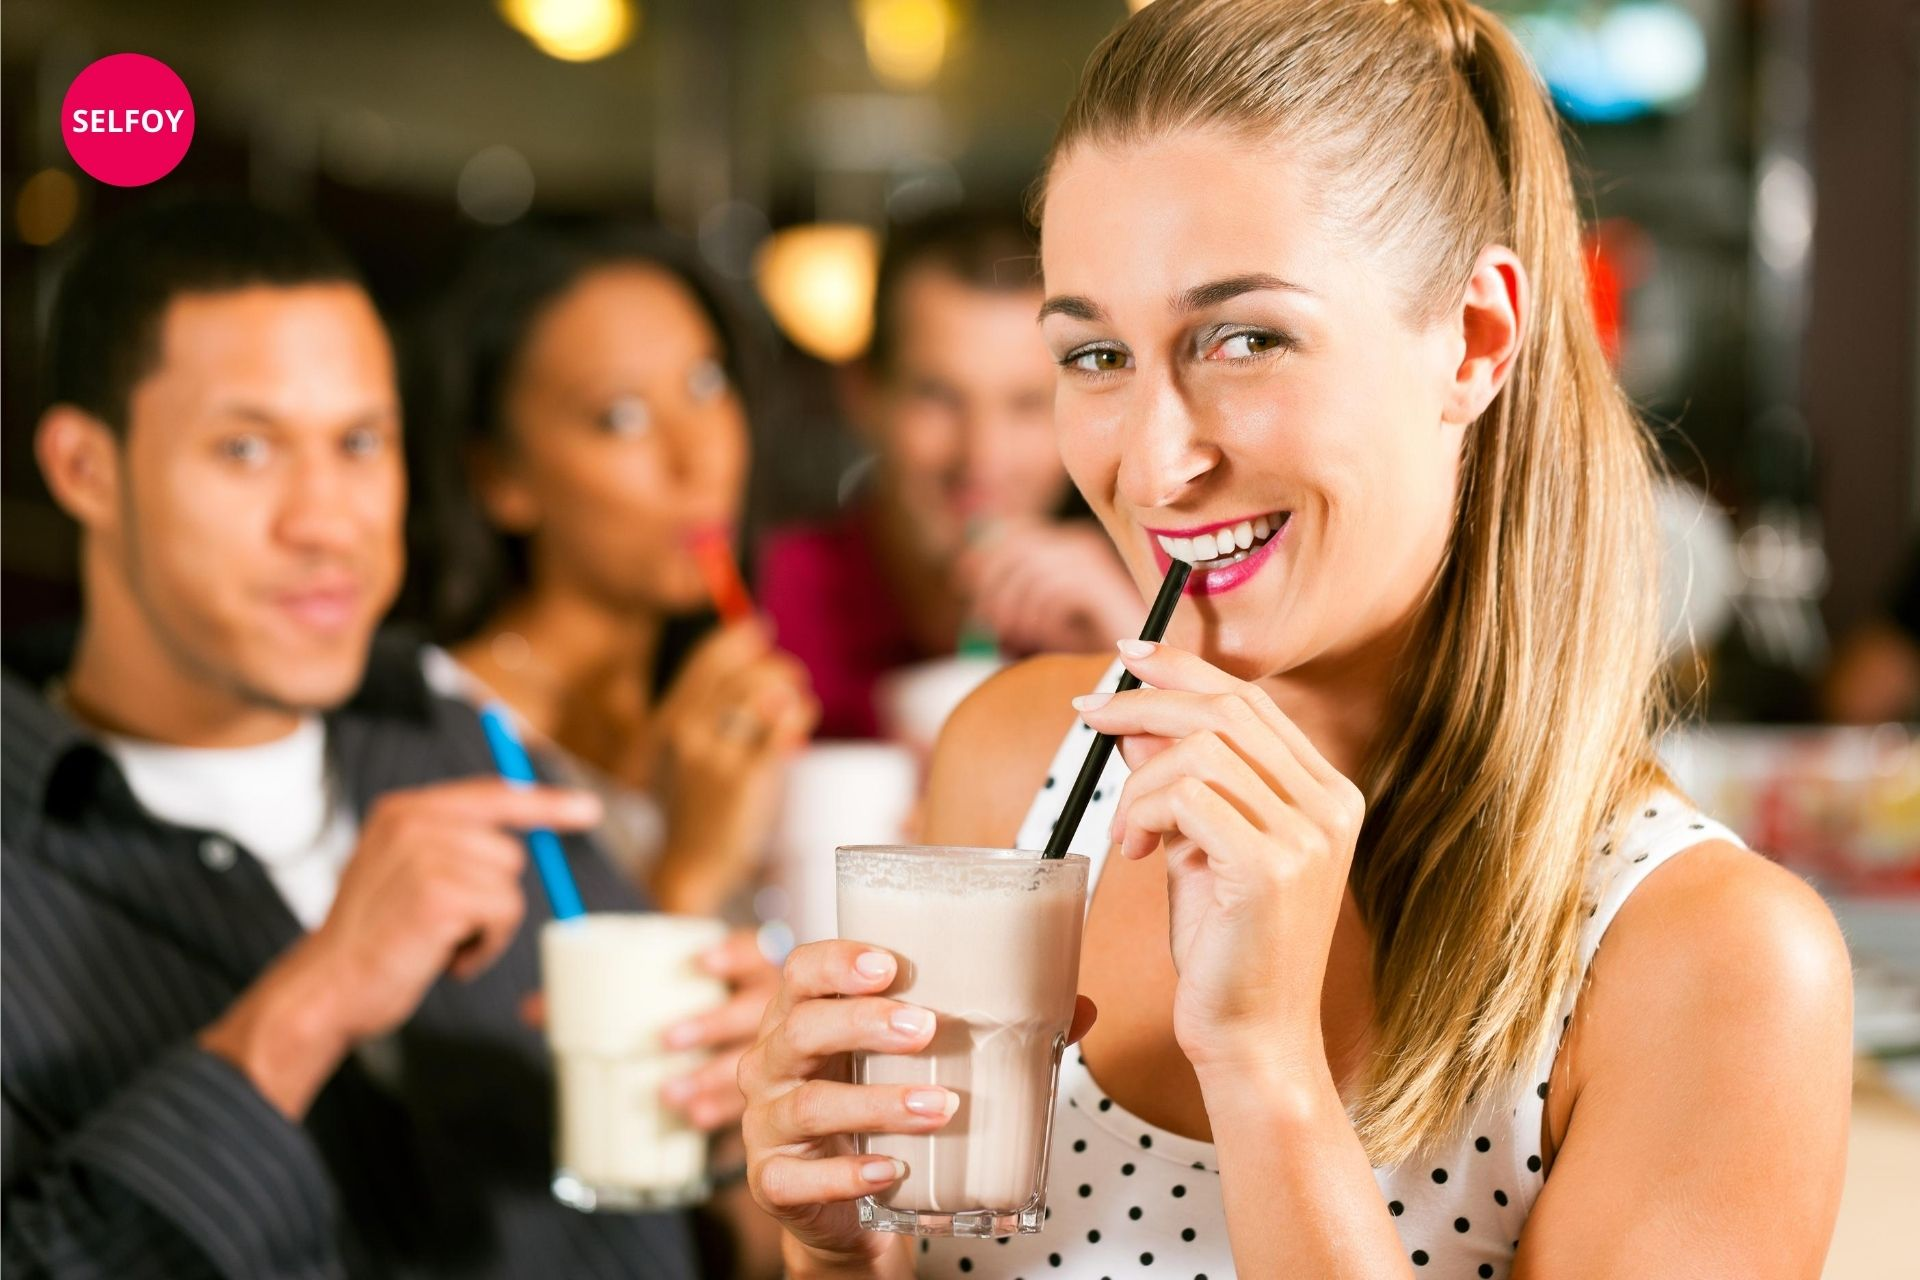 Girl is drinking shake and smiling and thats what are the characteristics of self confidence.